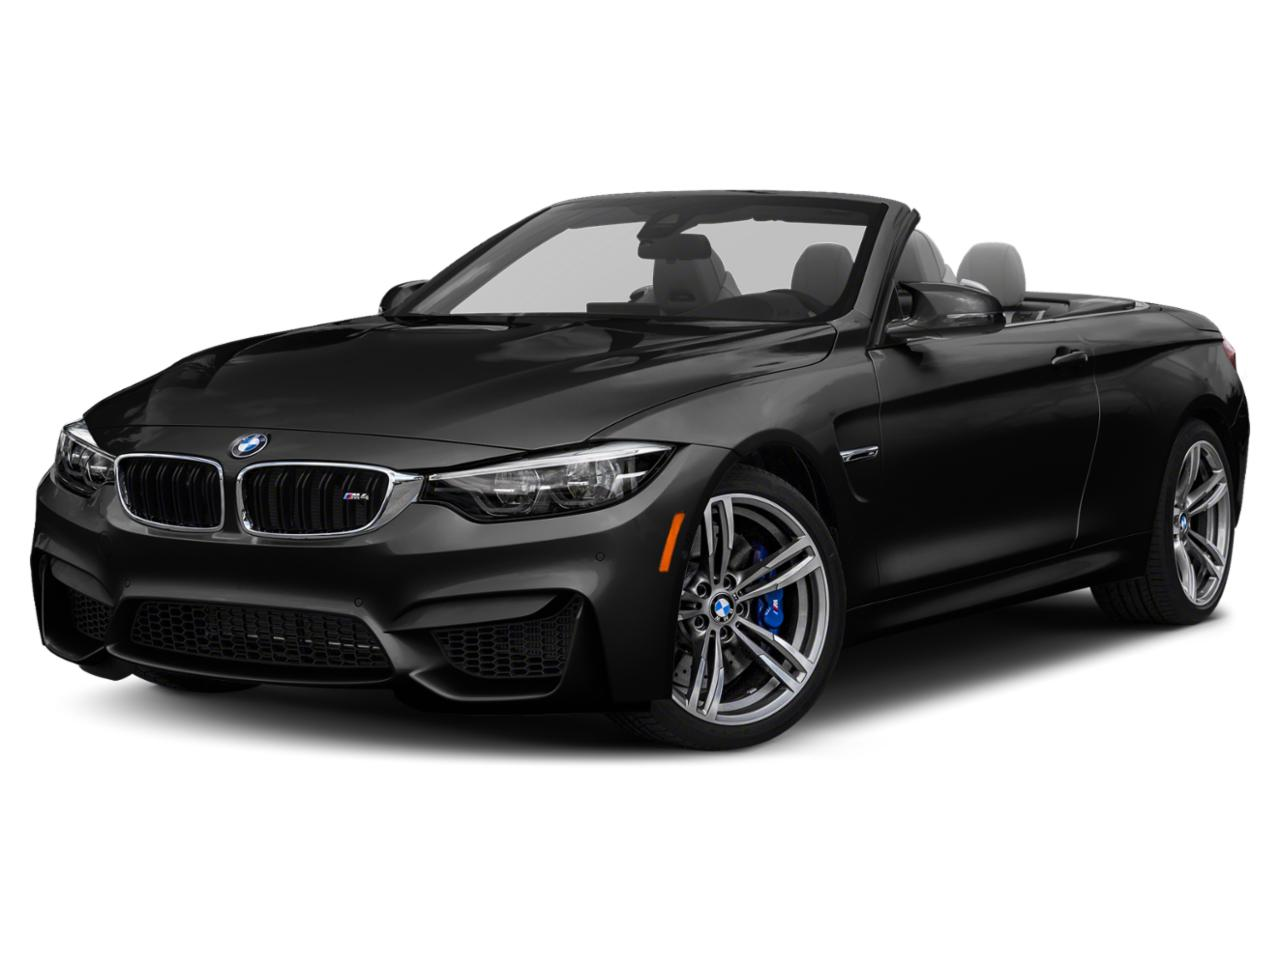 2019 Bmw Black Sapphire Metallic M4 3 0 L For Sale Faulkner Infiniti Of Mechanicsburg